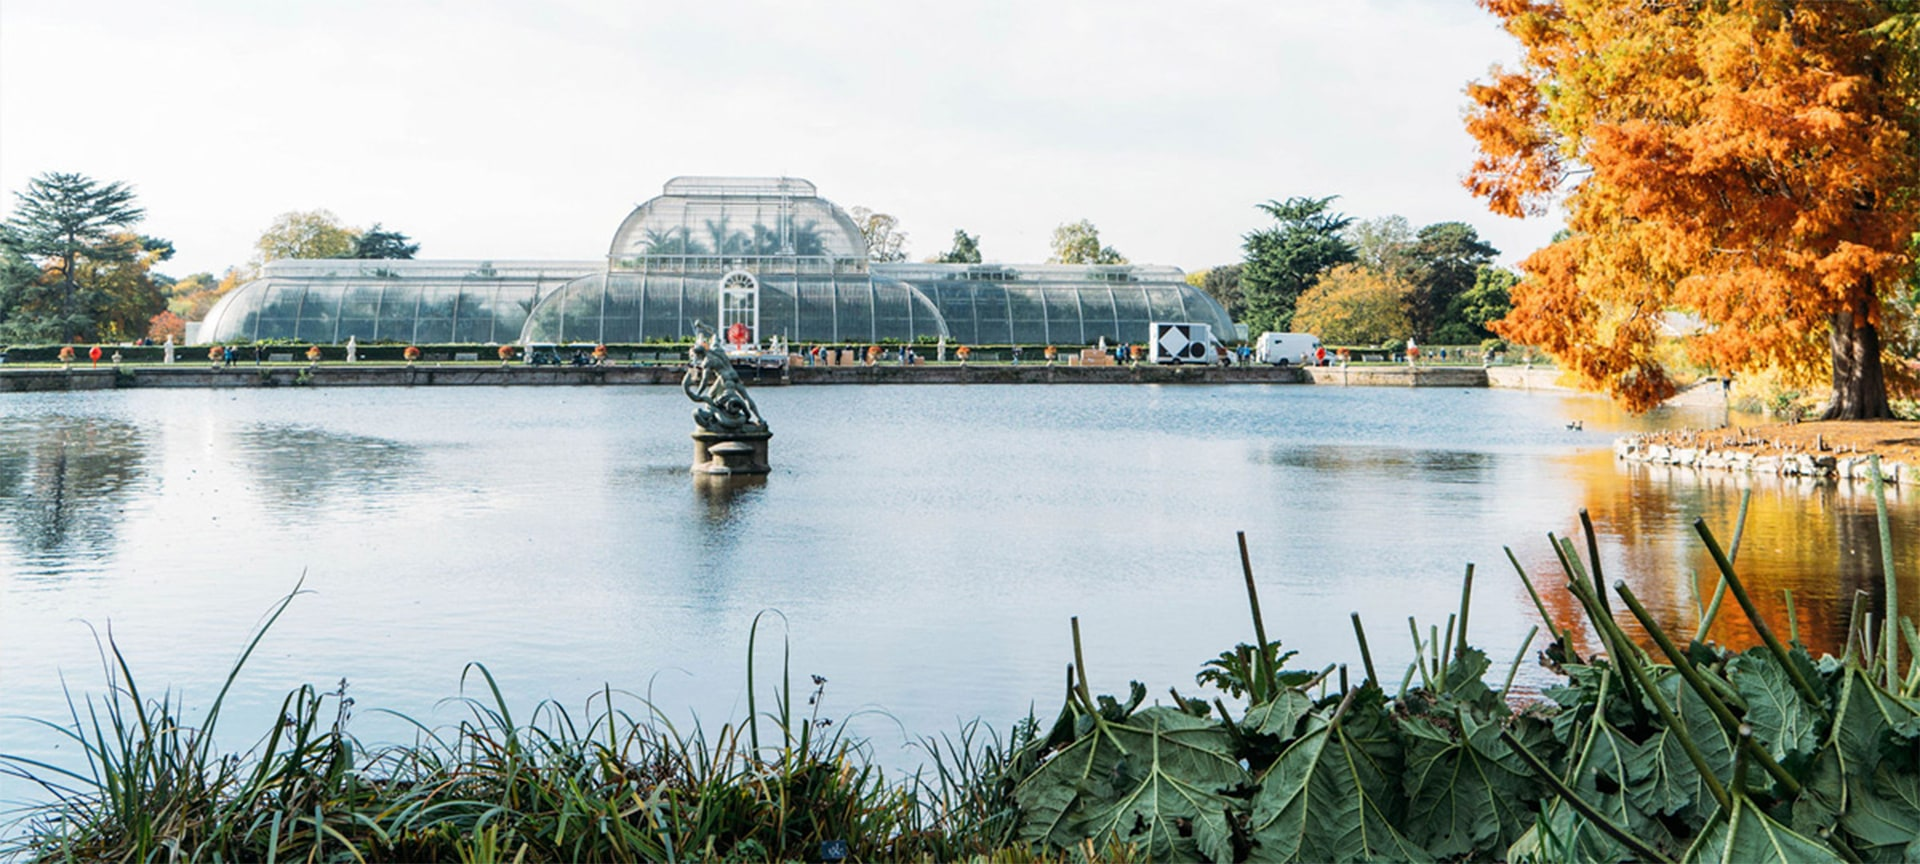 Explore one of London's most beautiful locations with a visit to the Royal Botanical Gardens, Kew. The world's largest collection of living plants, this UNESCO World Heritage Site features 326 acres of diverse plant life from across the globe. Journey through glasshouses and landscapes shaped over 250 years of history.